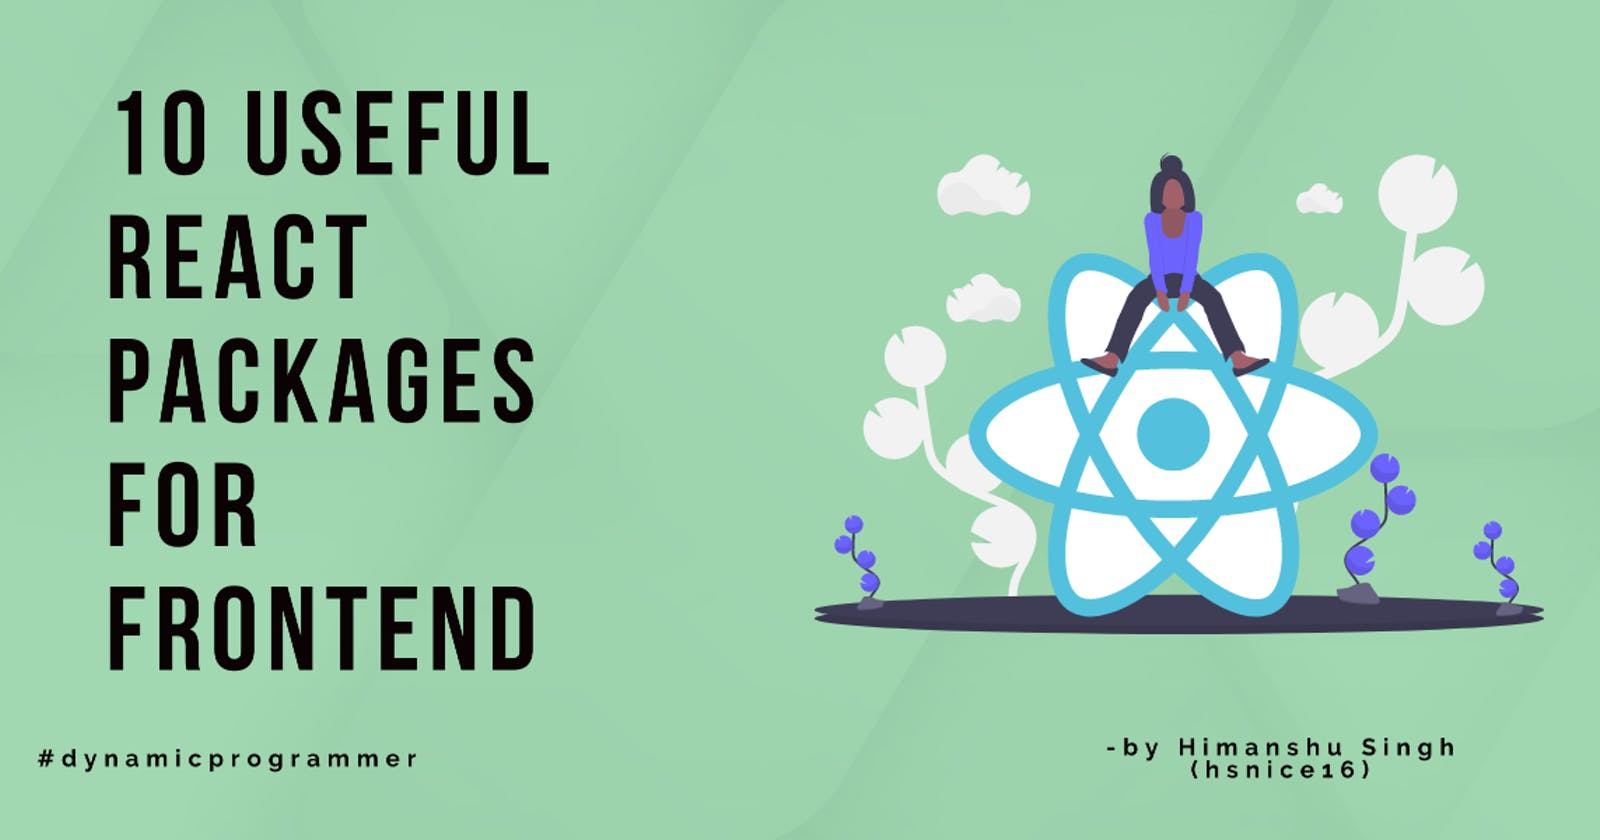 10 useful react packages for Frontend, #reactjs